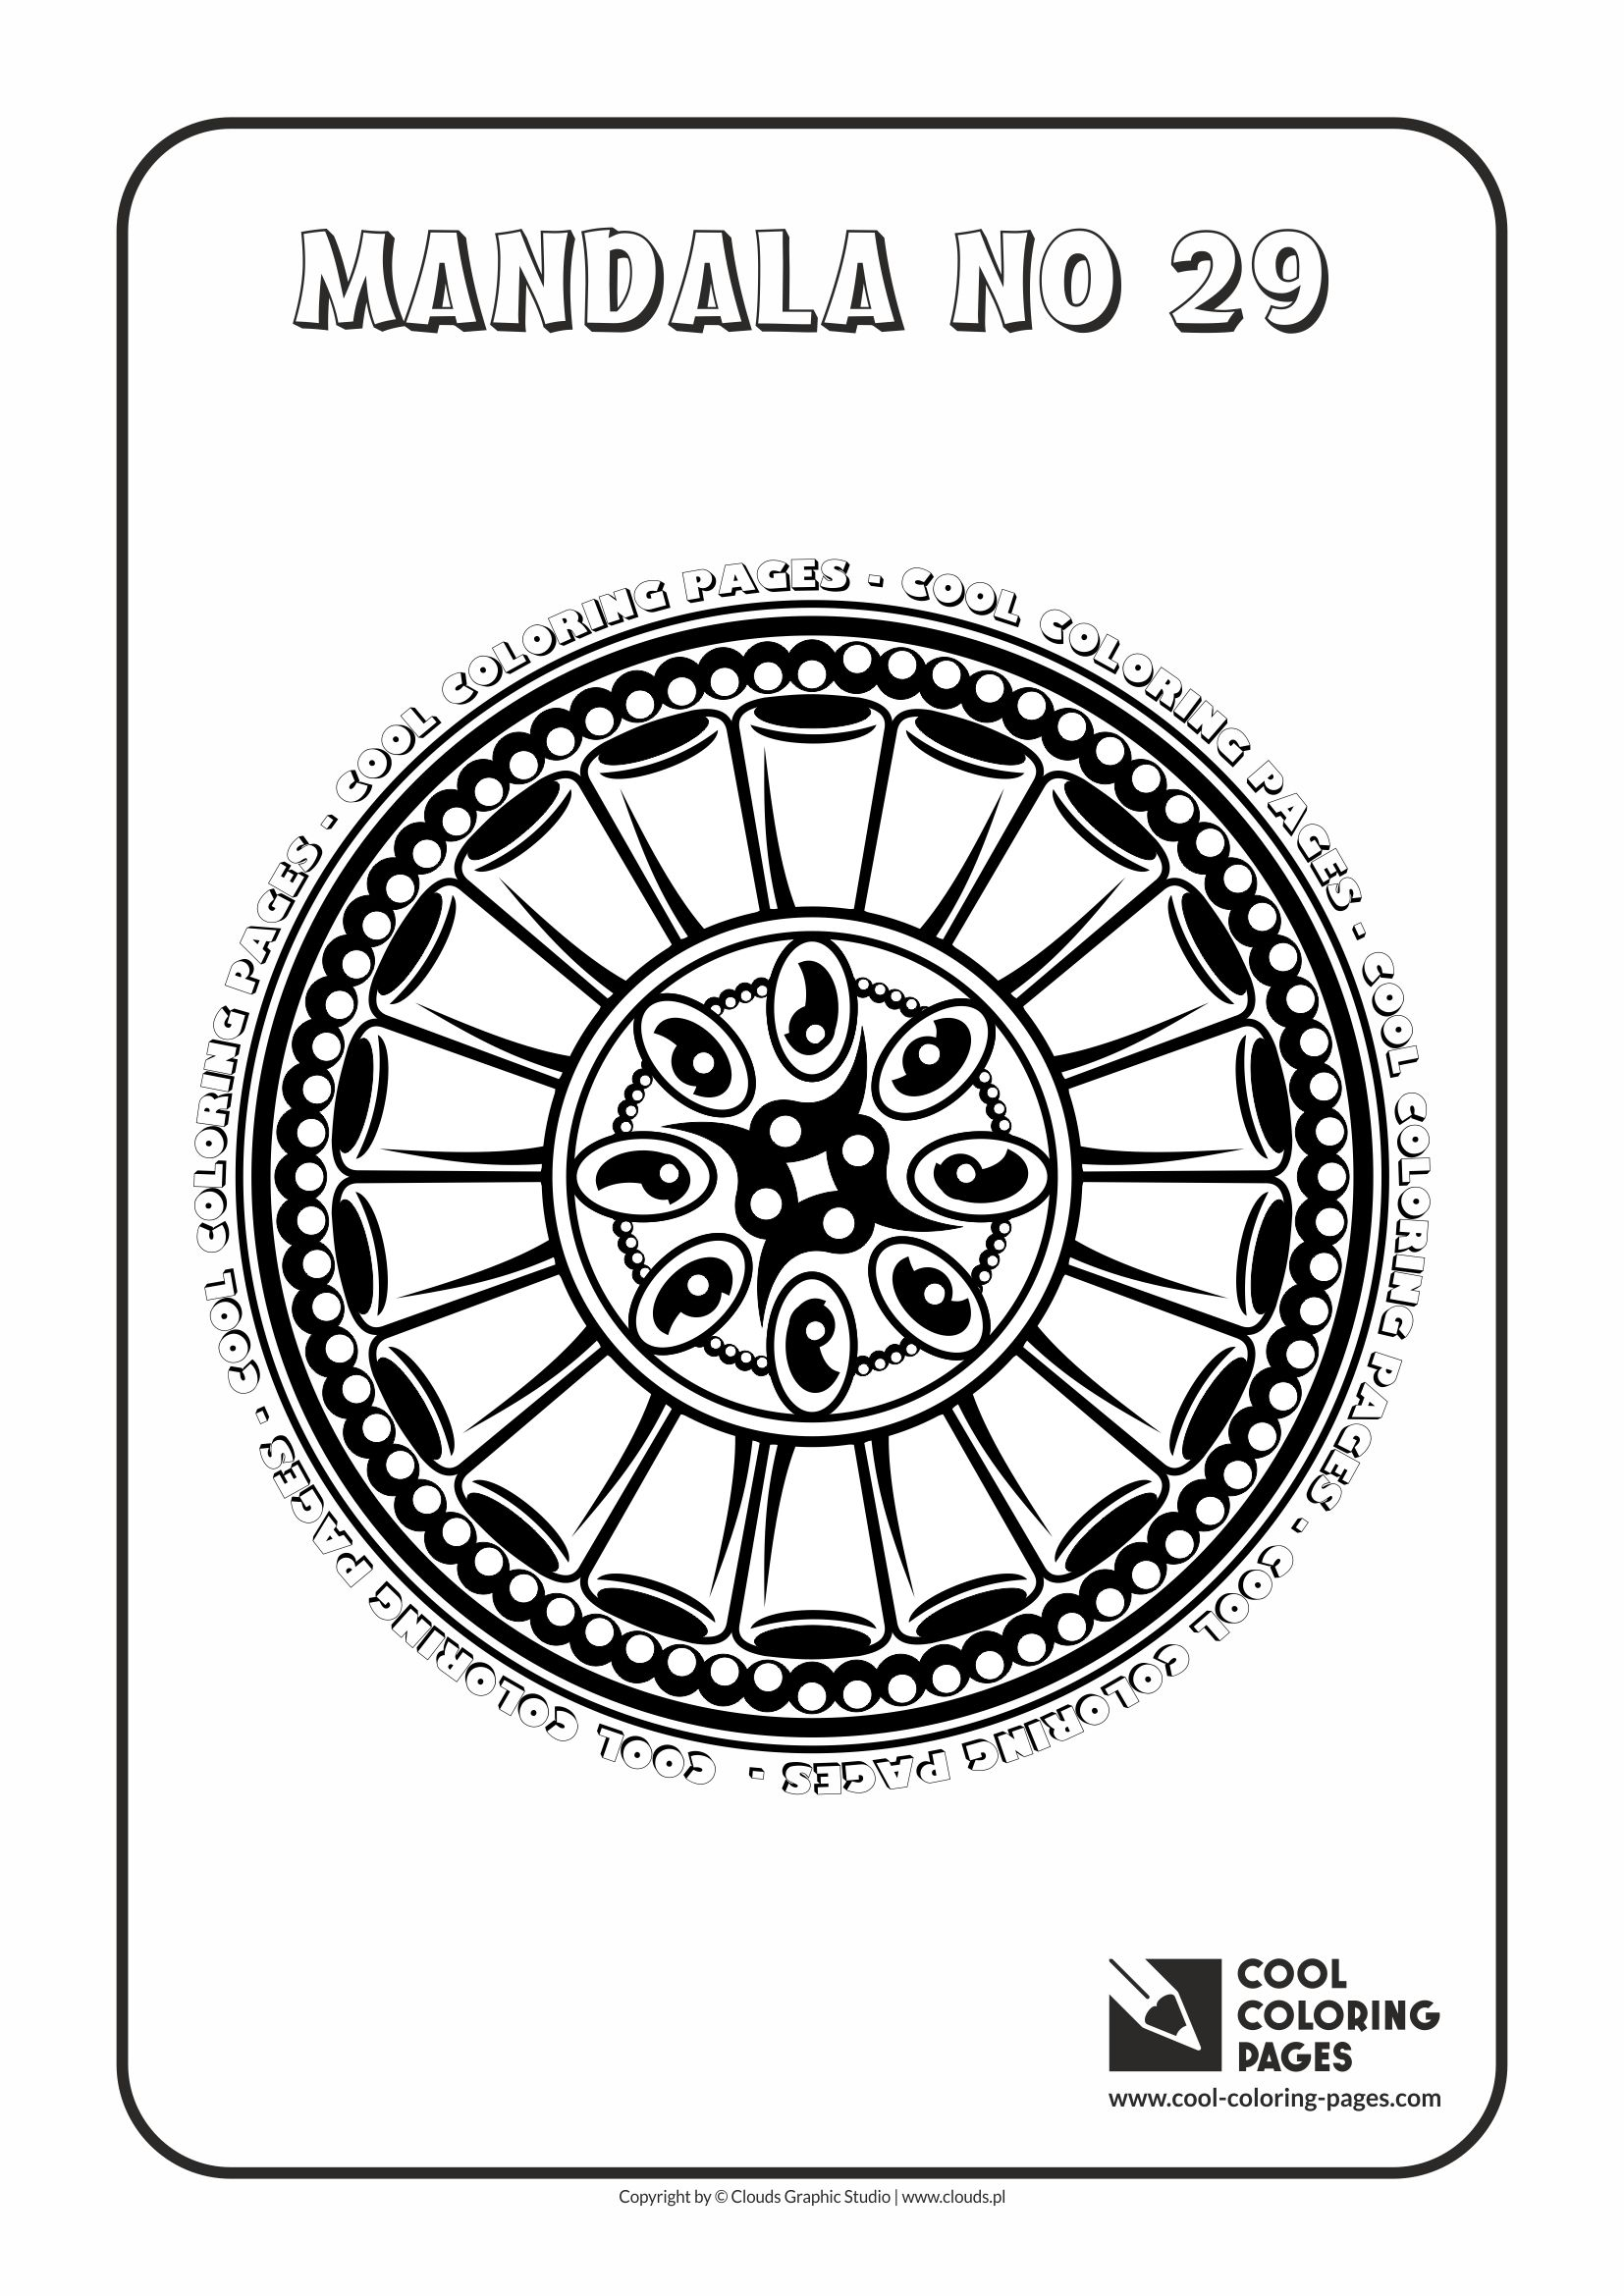 Cool Coloring Pages - Mandalas / Mandala no 29